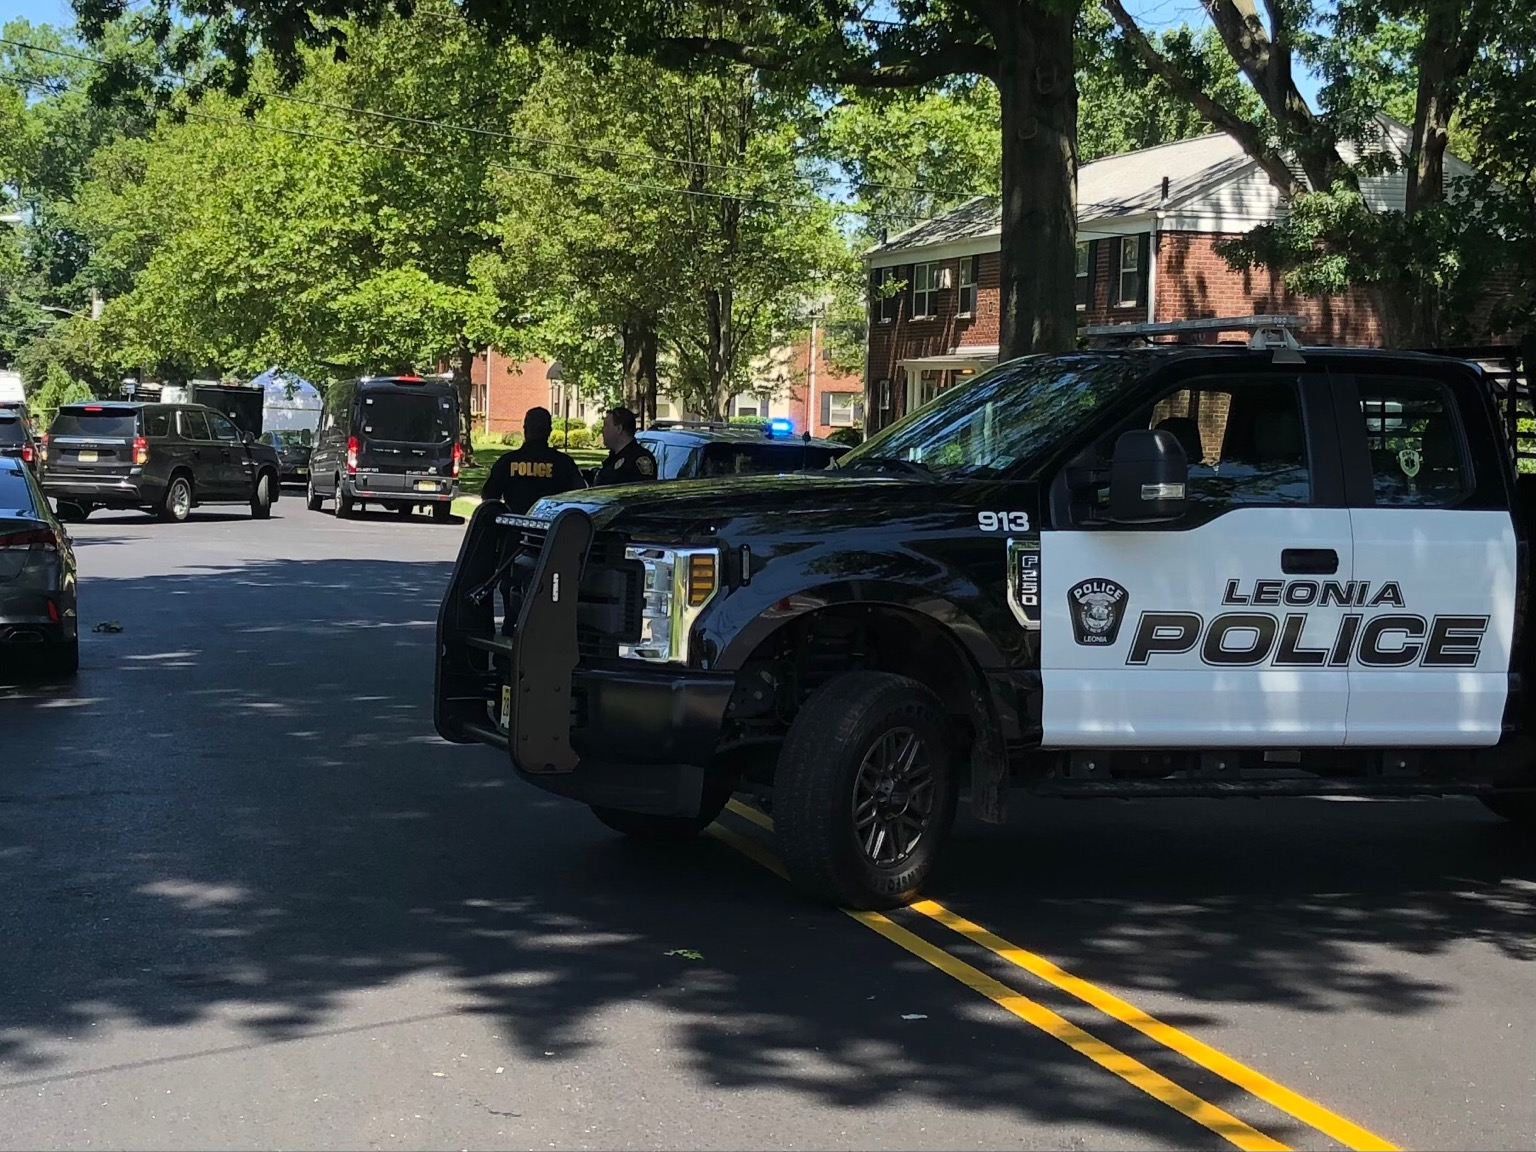 Police respond to FBI shooting in Leonia, New Jersey